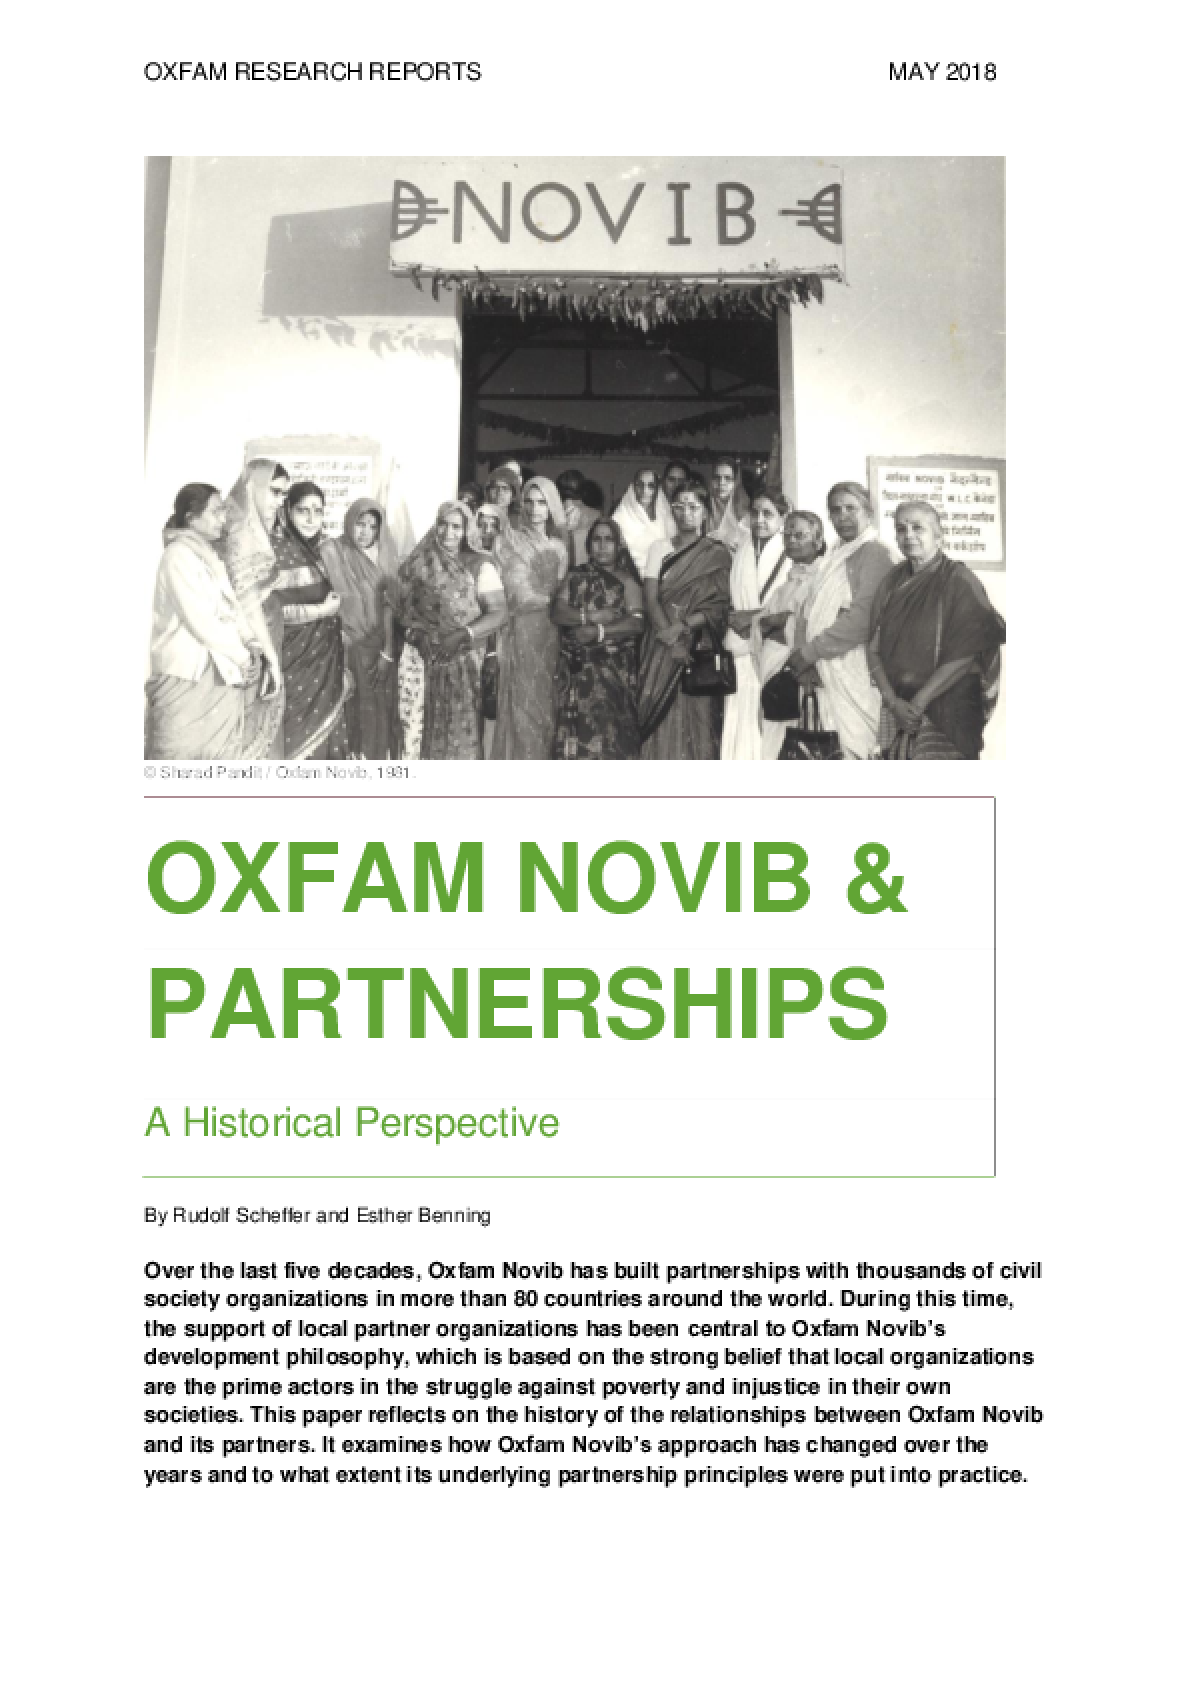 Oxfam Novib and Partnerships: A historical perspective